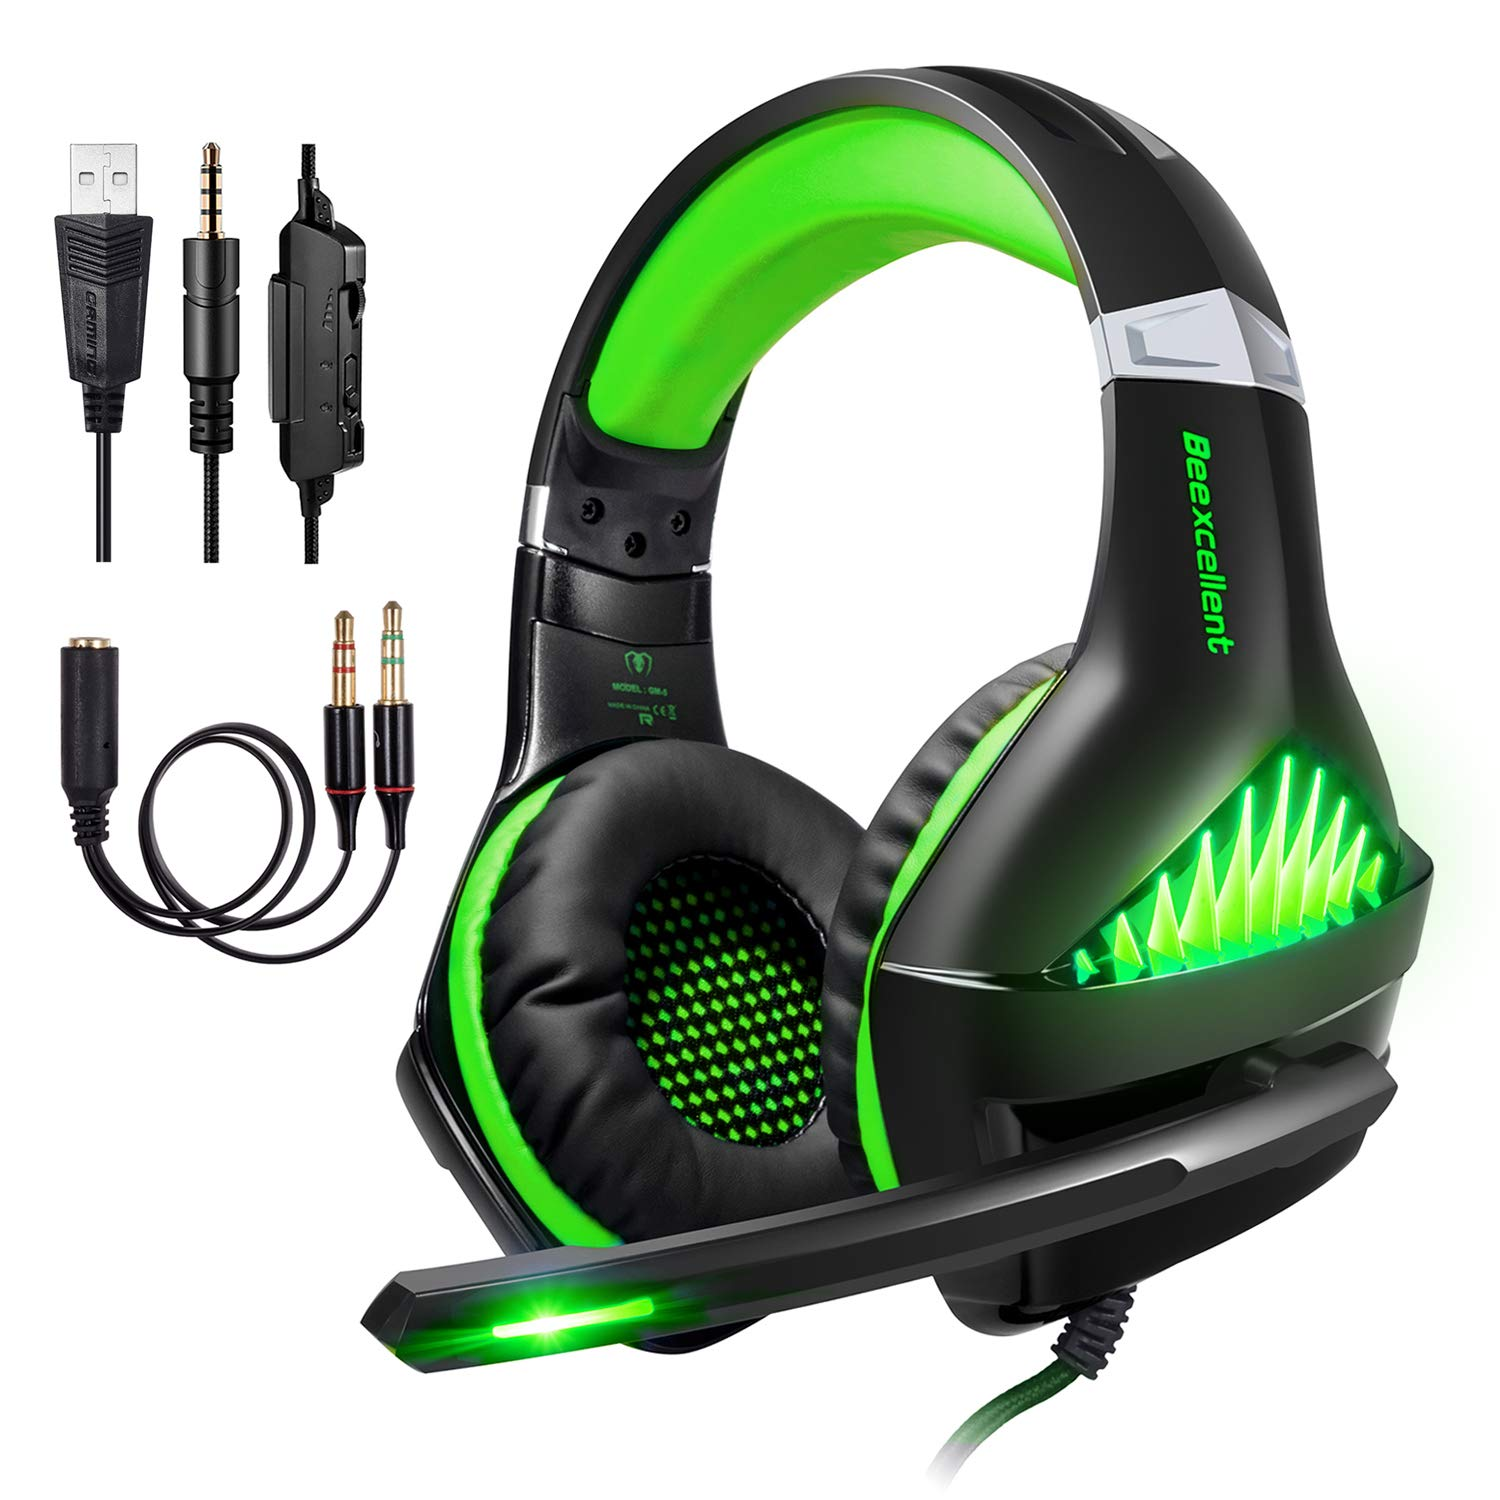 BlueFire Upgraded Professional PS4 Gaming Headset 3.5mm Wired Bass Stereo Noise Isolation Gaming Headphone with Mic and LED Lights for Playstation 4, Xbox one, Laptop, PC (Light Green) by BlueFire